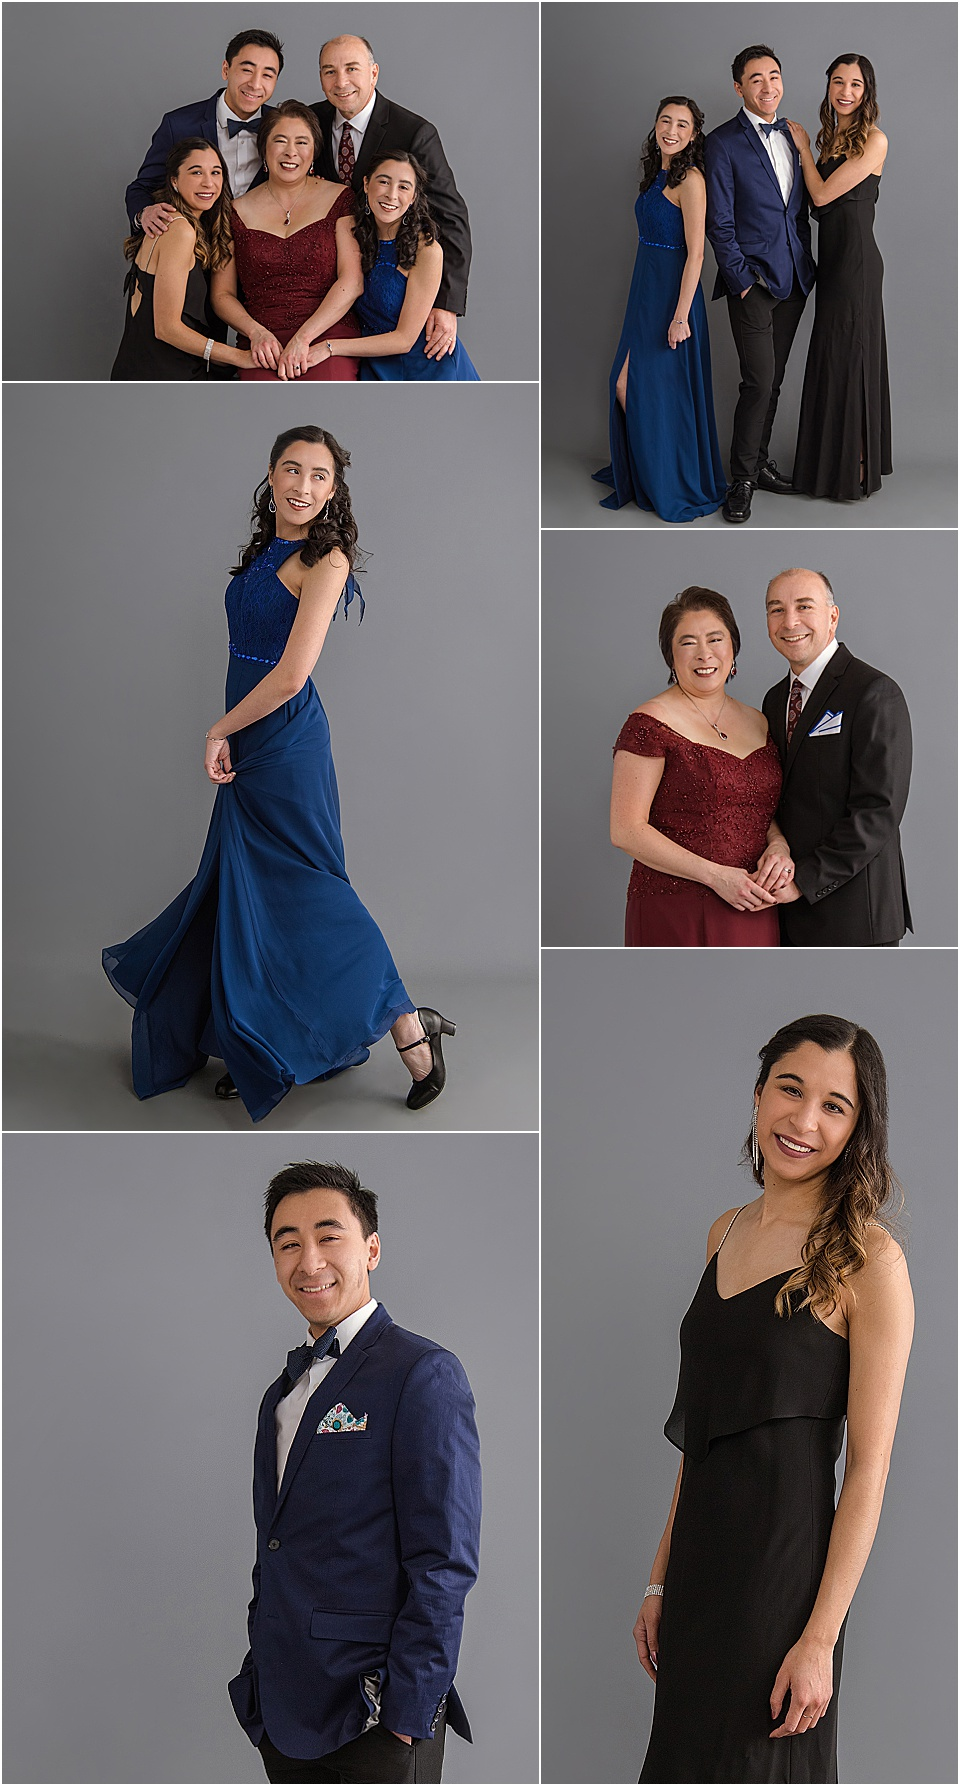 Studio B Portraits_formal family portrait of beautiful asain family.jpg